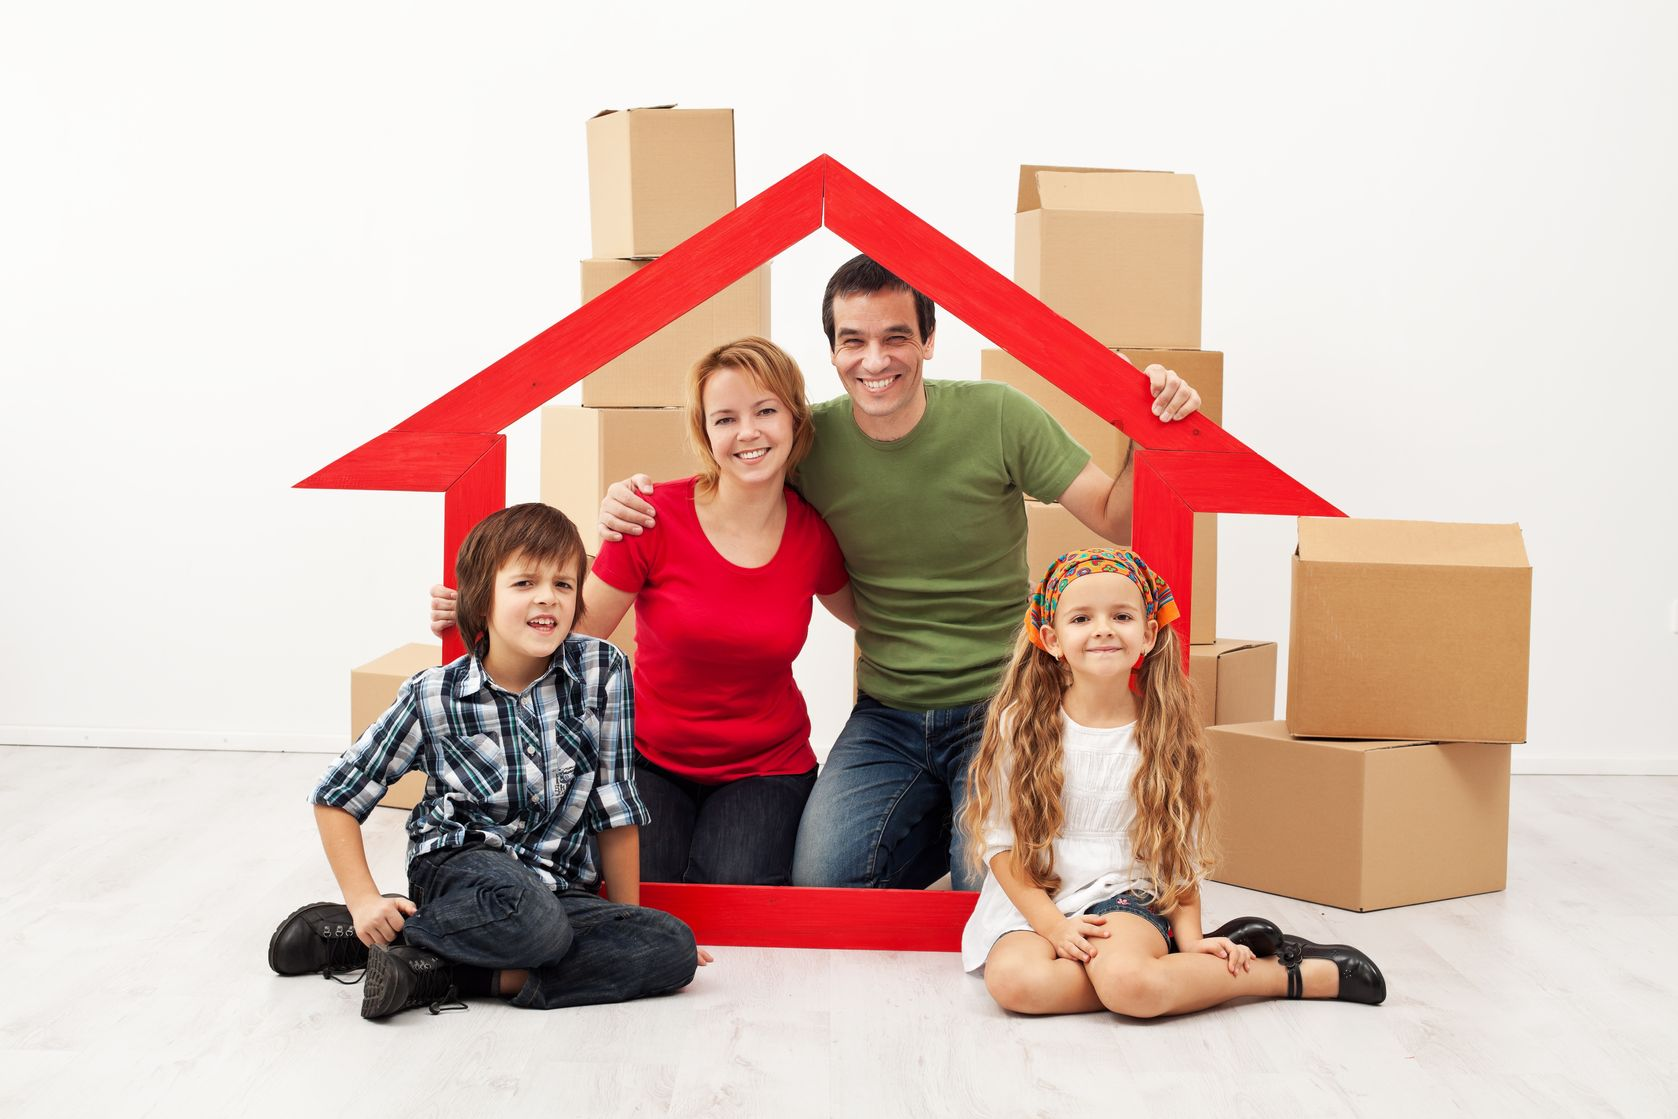 Tallahassee, FL.  Homeowners Insurance